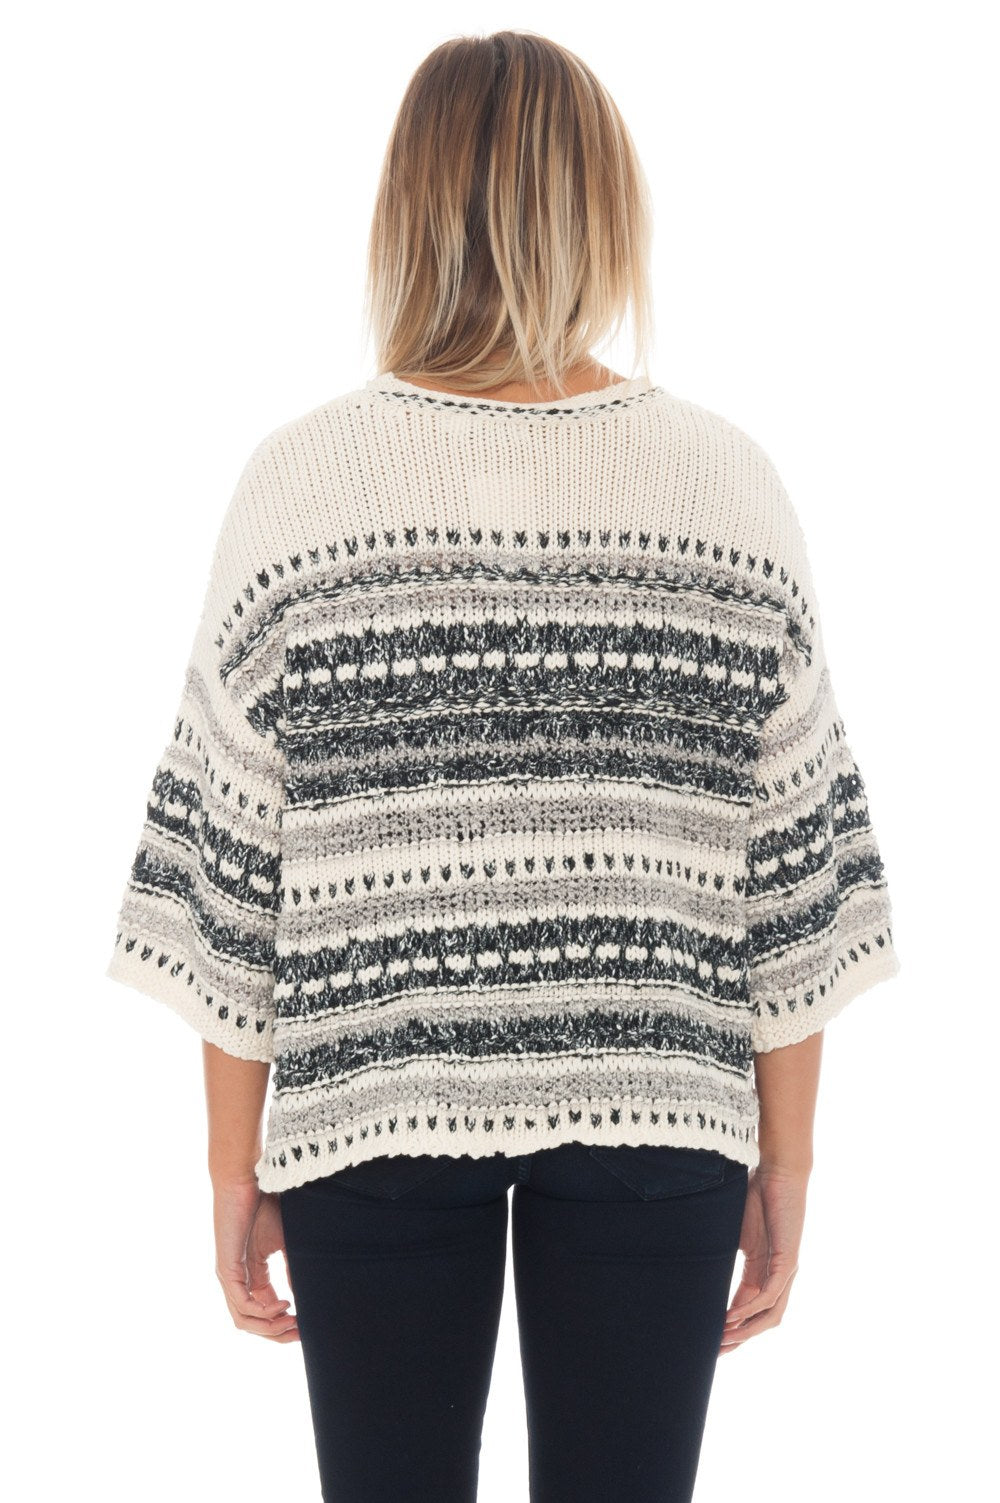 Sweater - Stripes + Fringe - 3